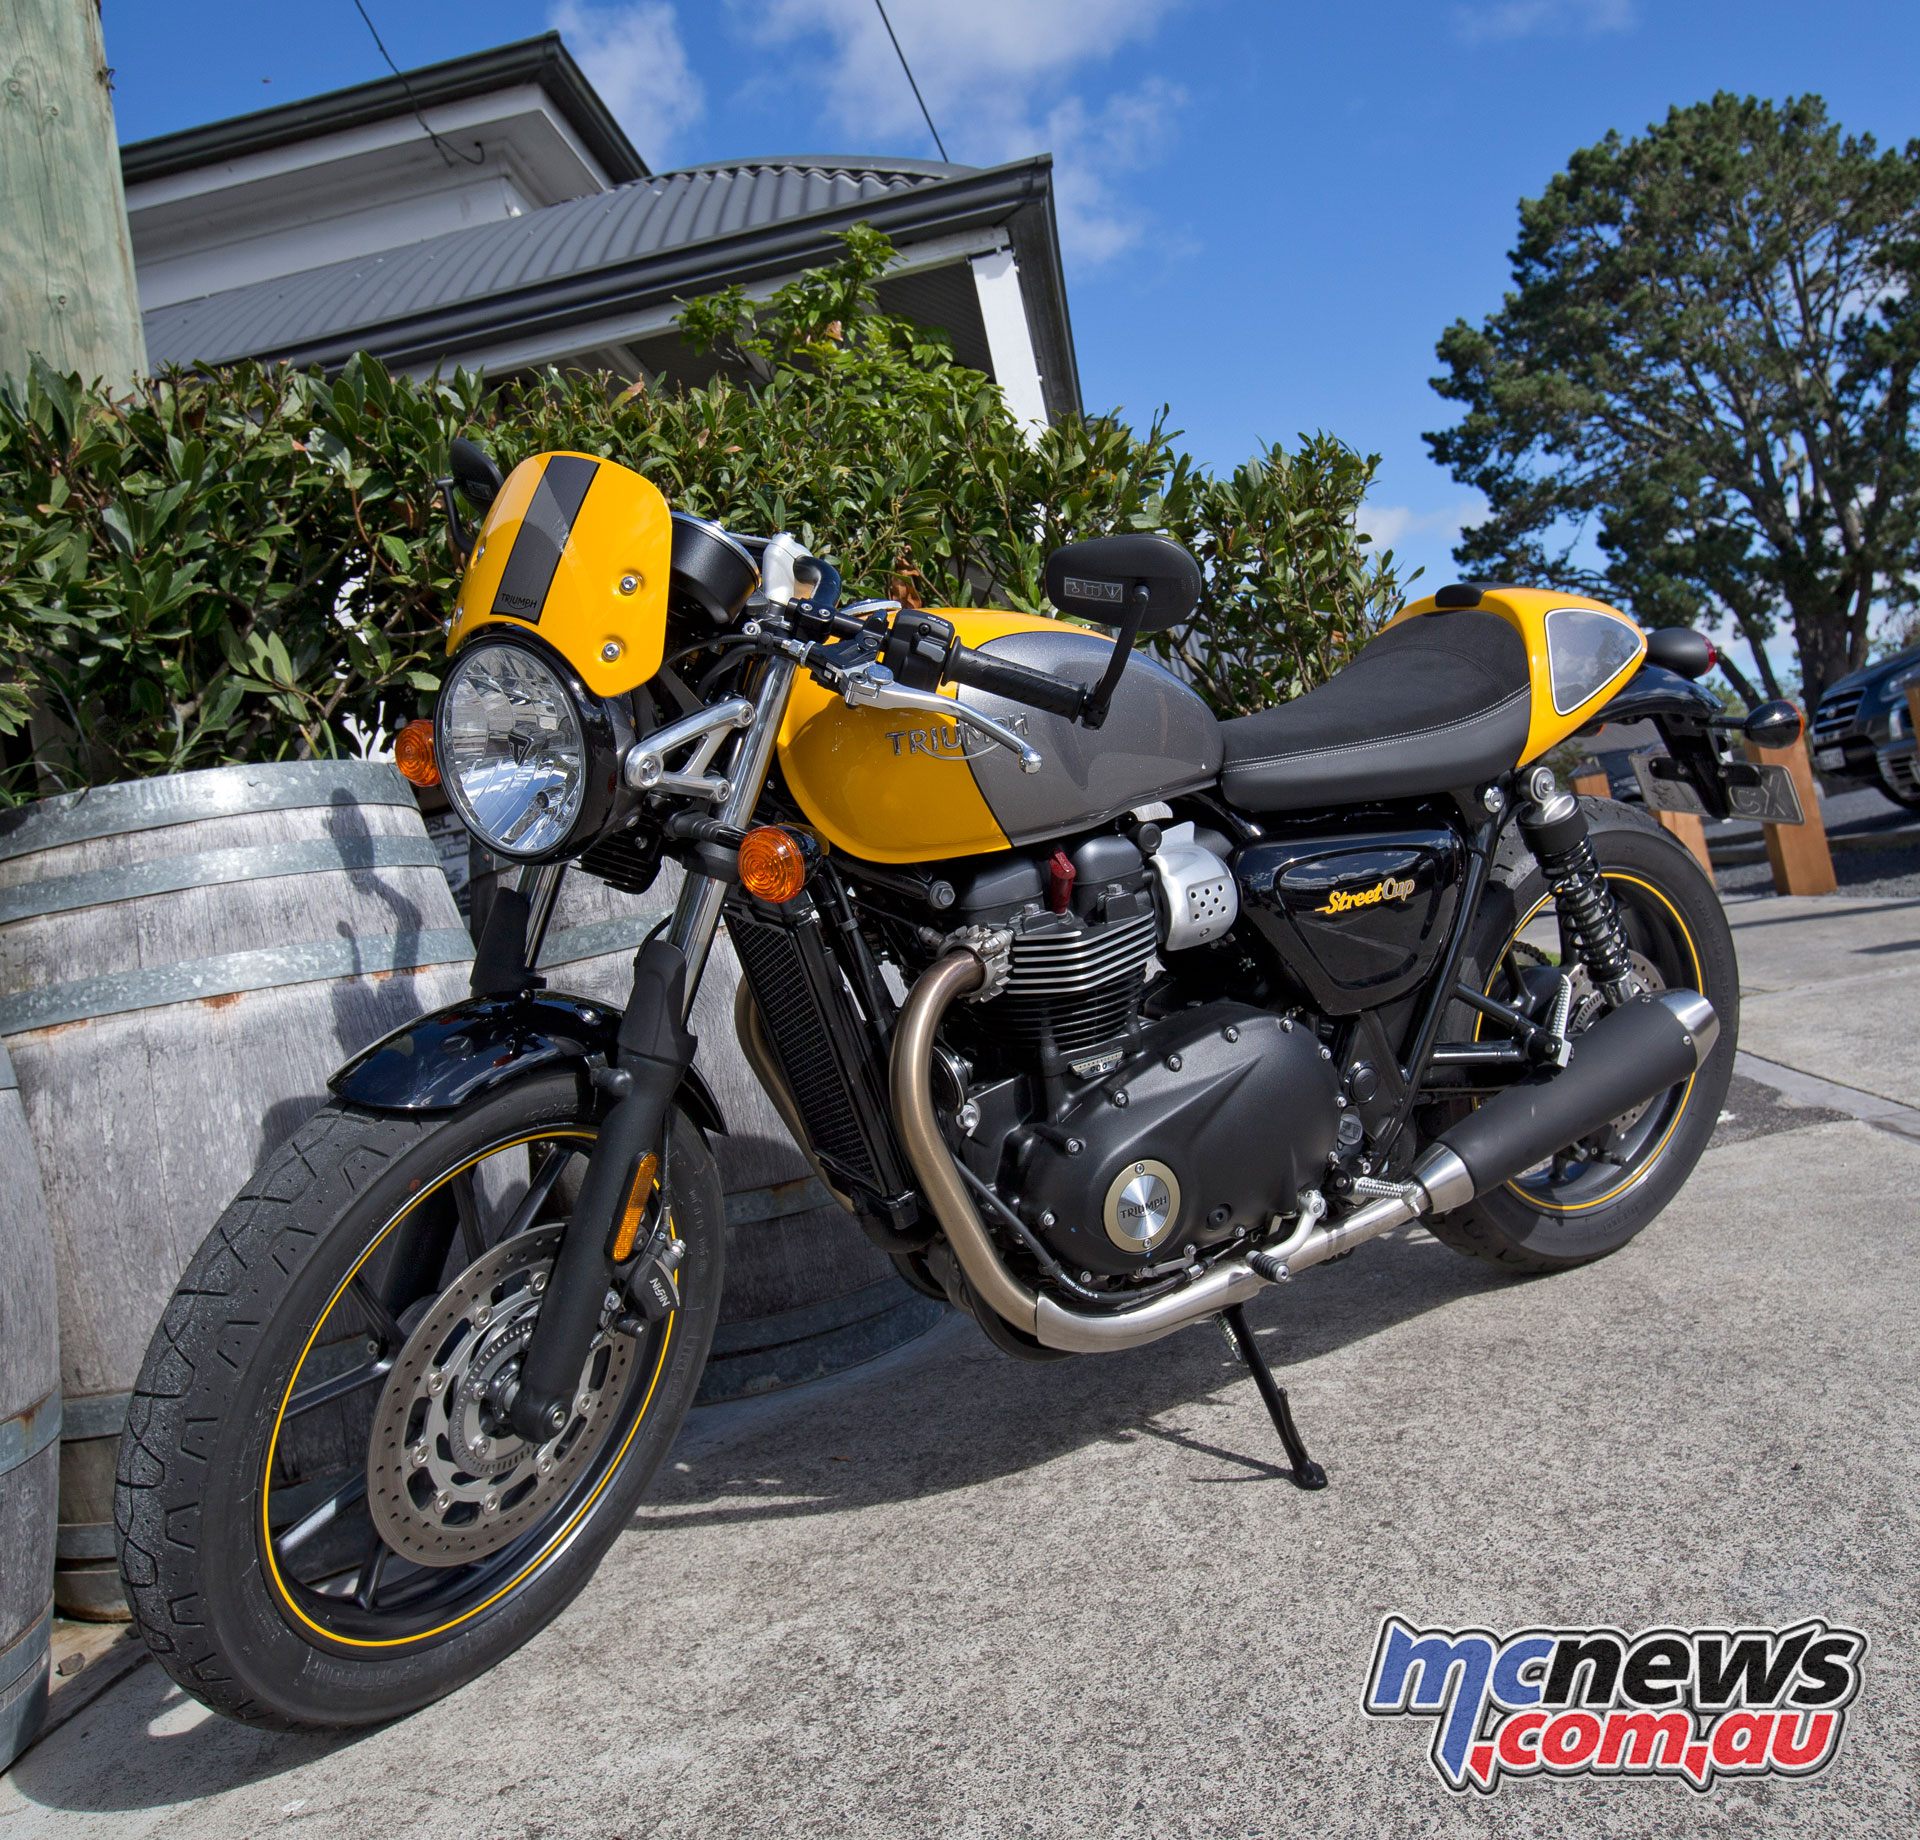 2017 Triumph Street Cup Review Motorcycle Test Mcnewscomau